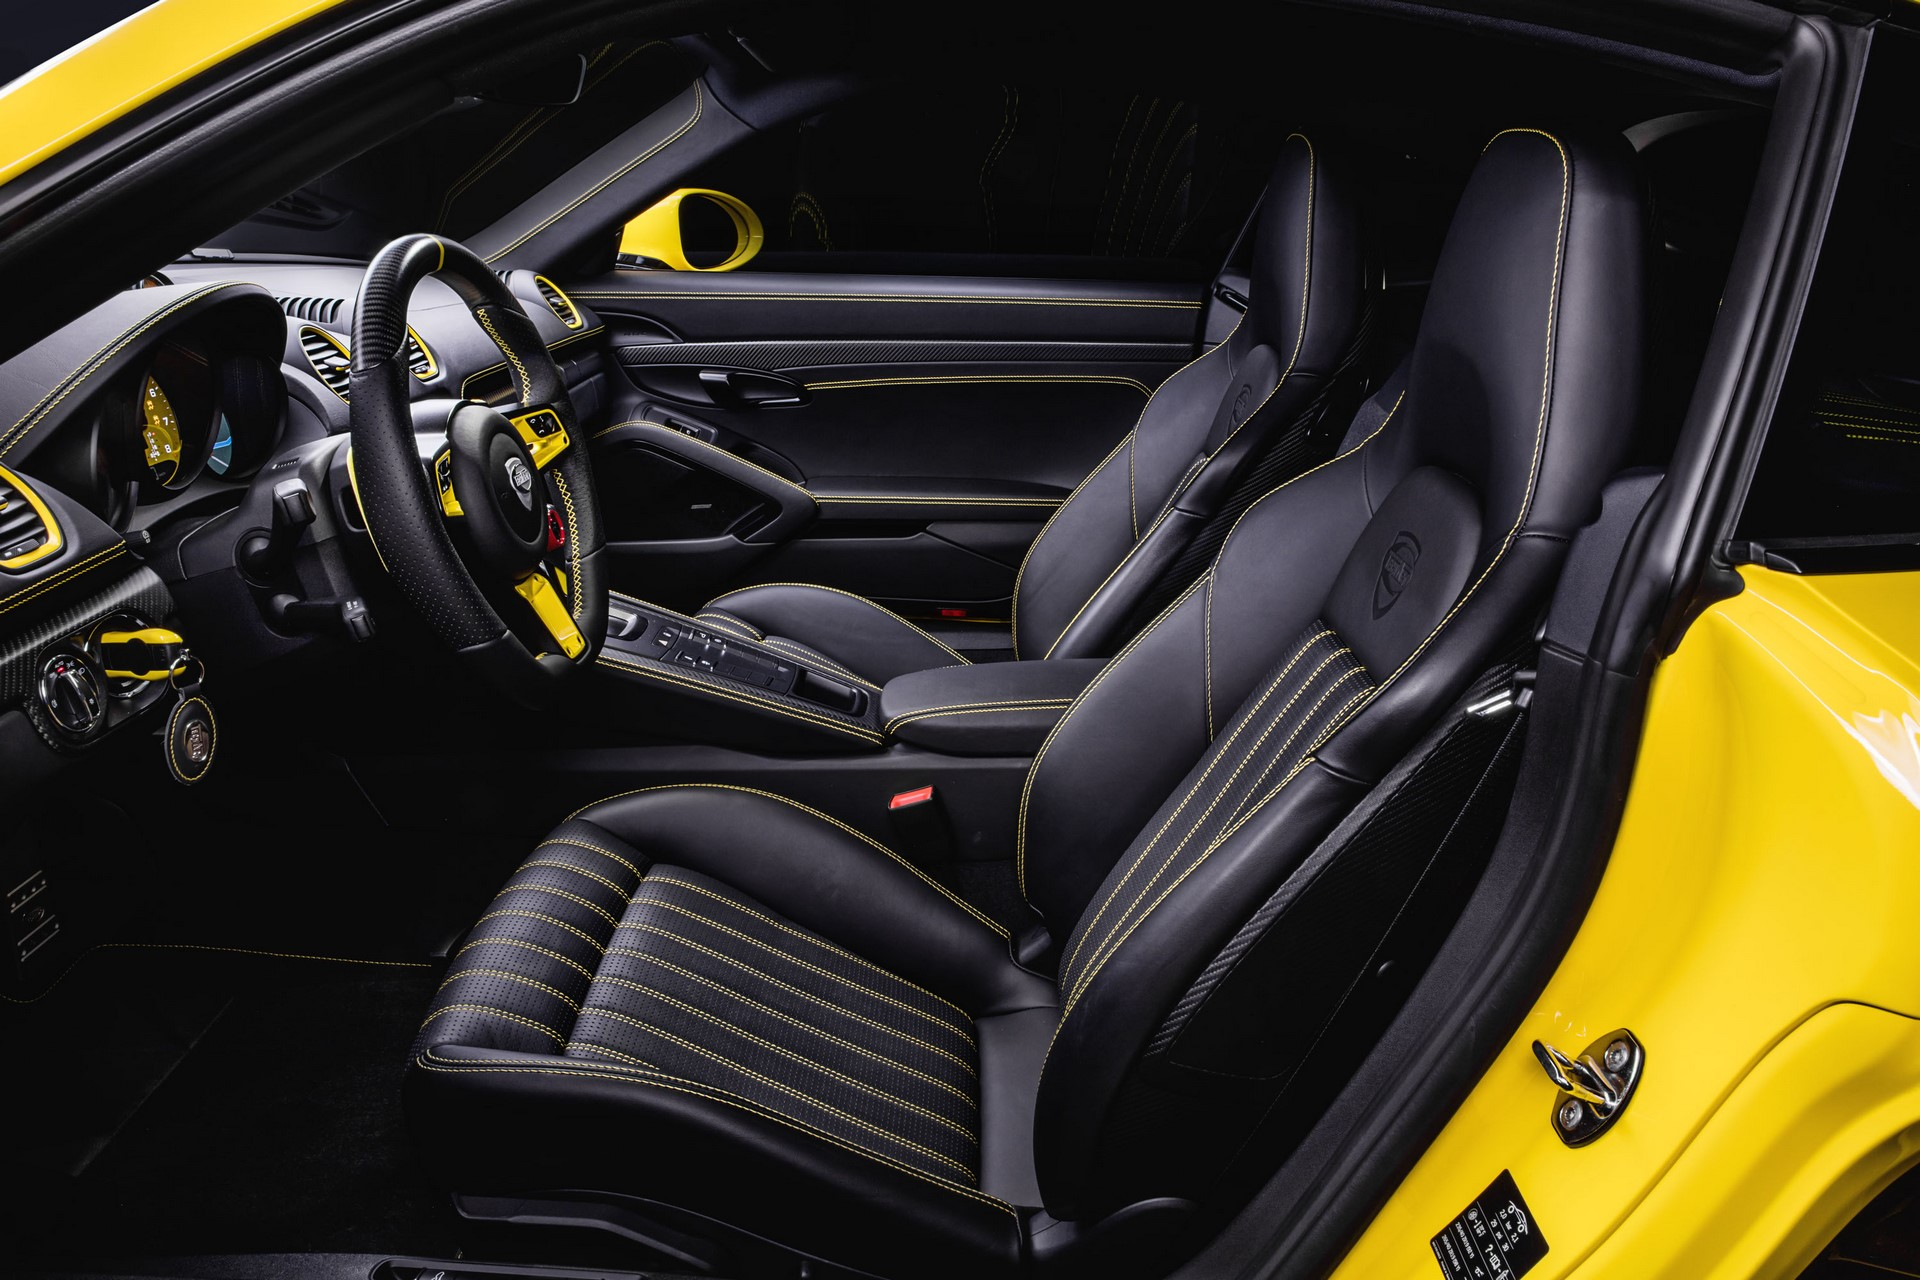 TECHART_Detail_Interior_04